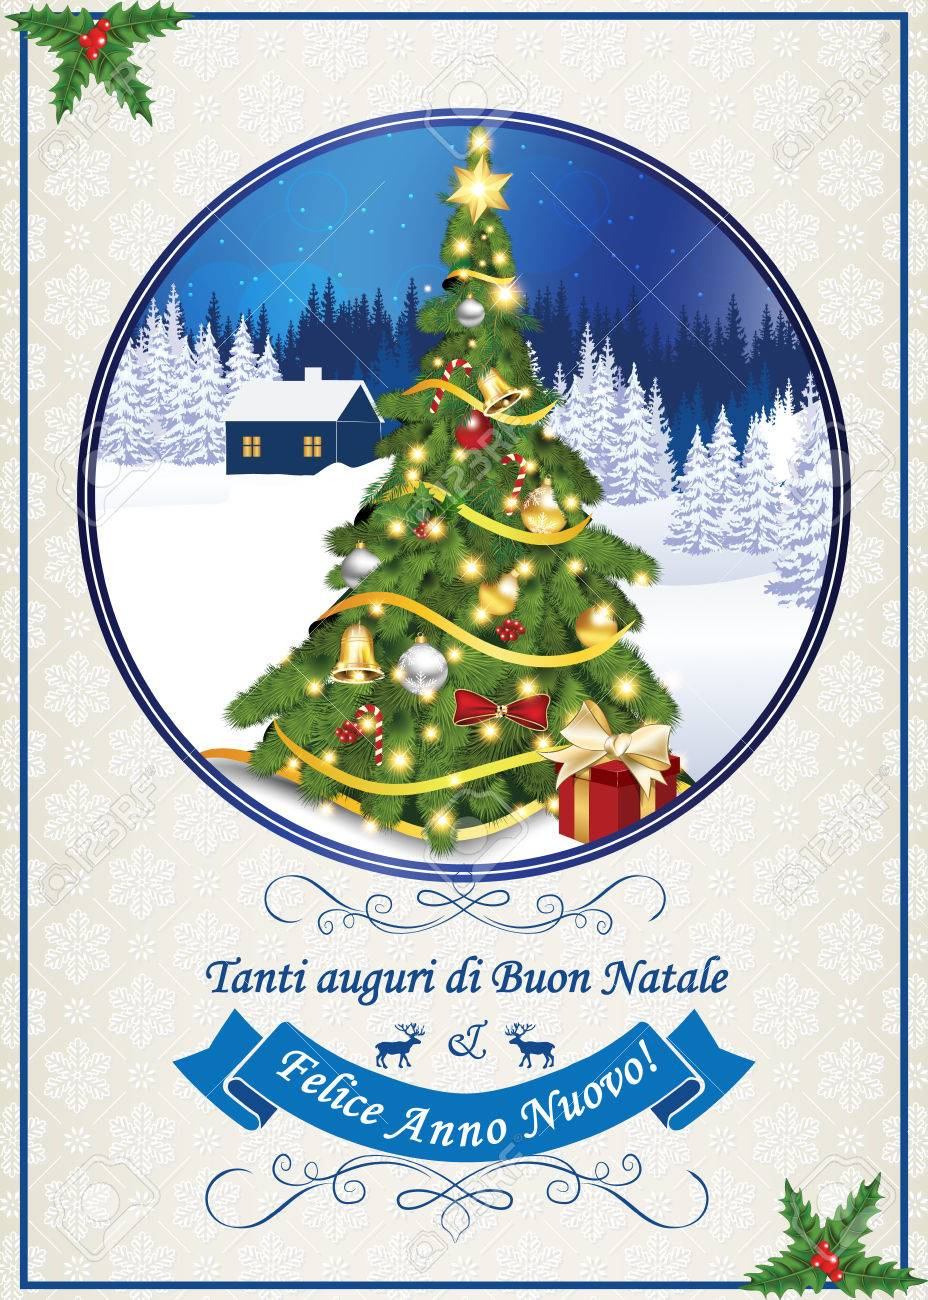 italian seasons greetings for winter holiday merry christmas and happy new year tanti auguri